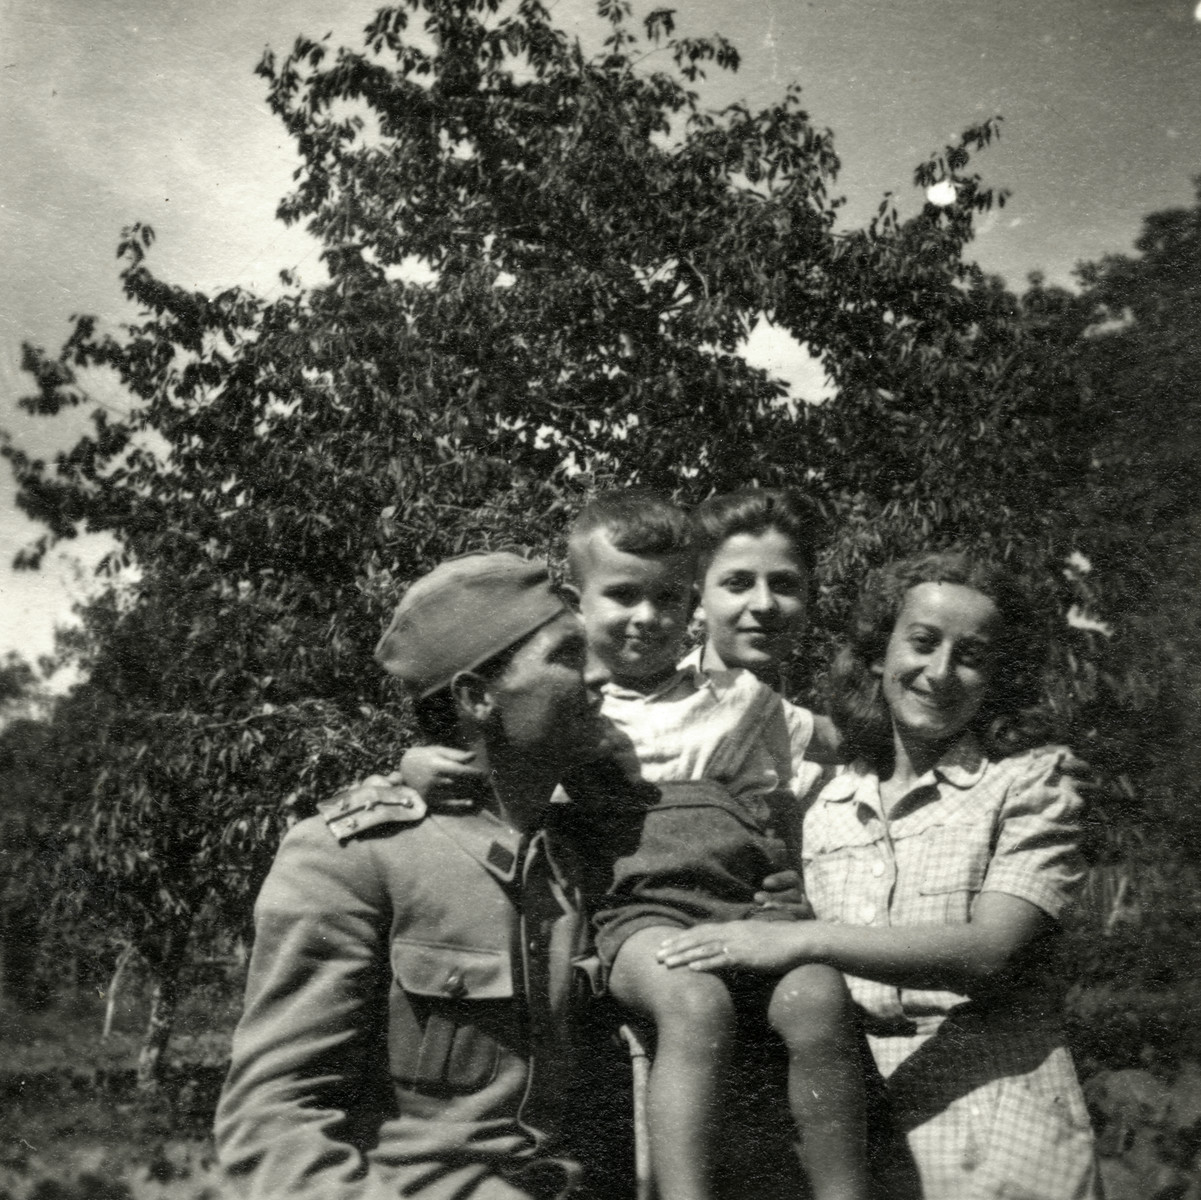 A group of friends, one in military uniform pose outside after the war.  Donna Papo is pictured on the right.